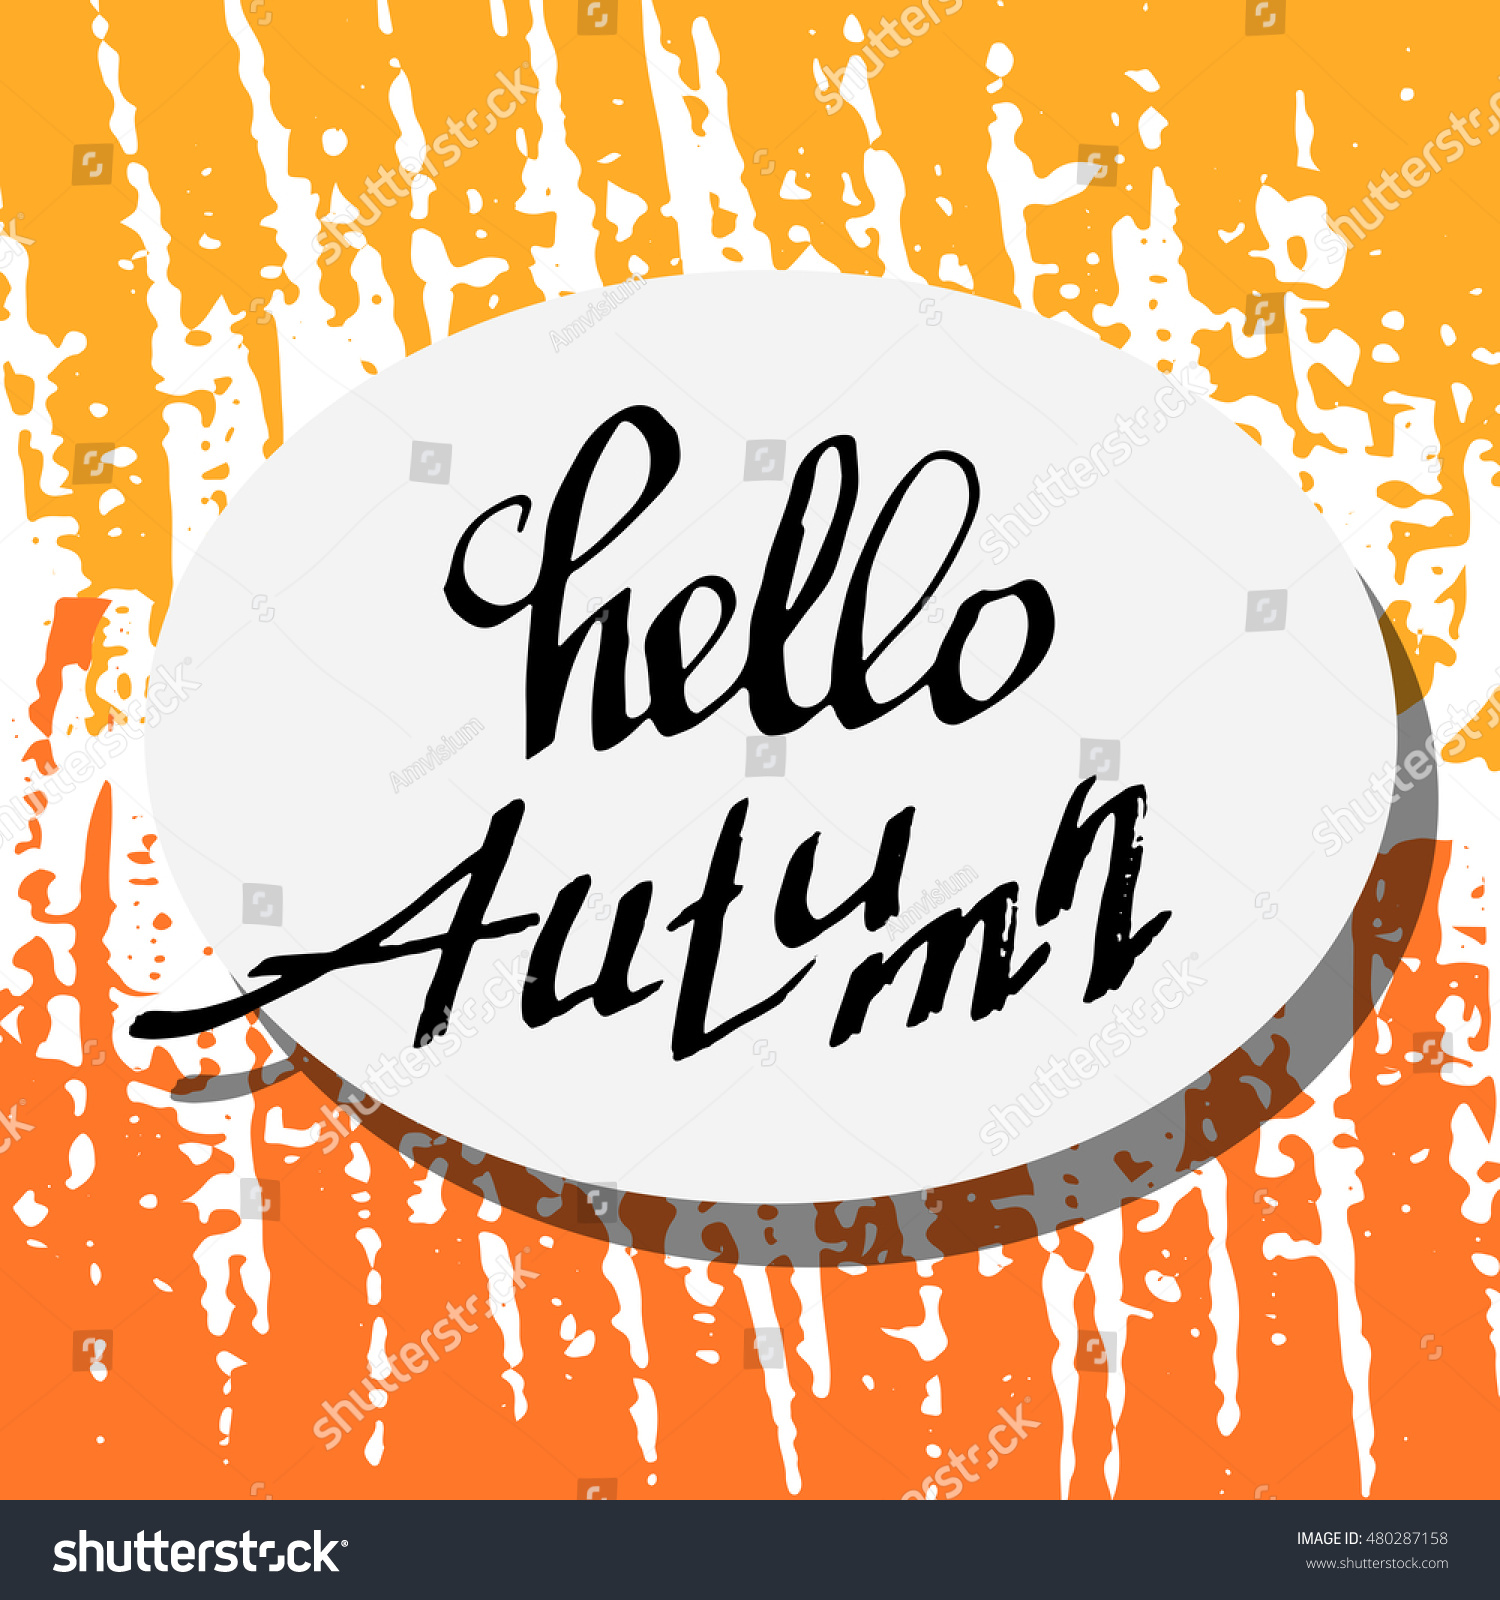 Hello Autumn. Unusual Lettering Background. Perfect Hand Drawn Inscription.  Card Design. Handwritten